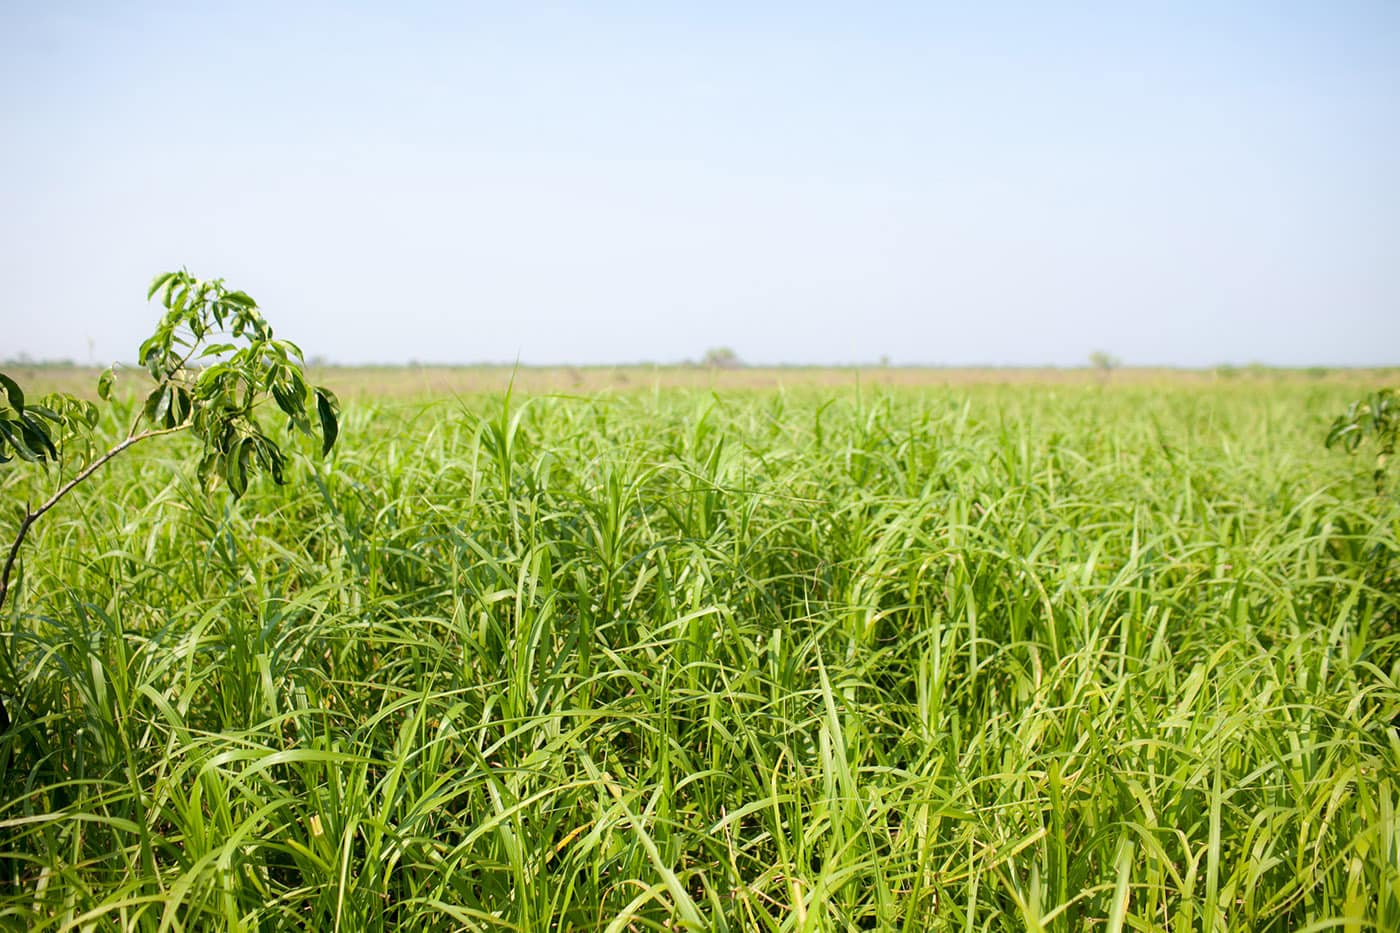 Field - The Pampas in the Bolivian Amazon